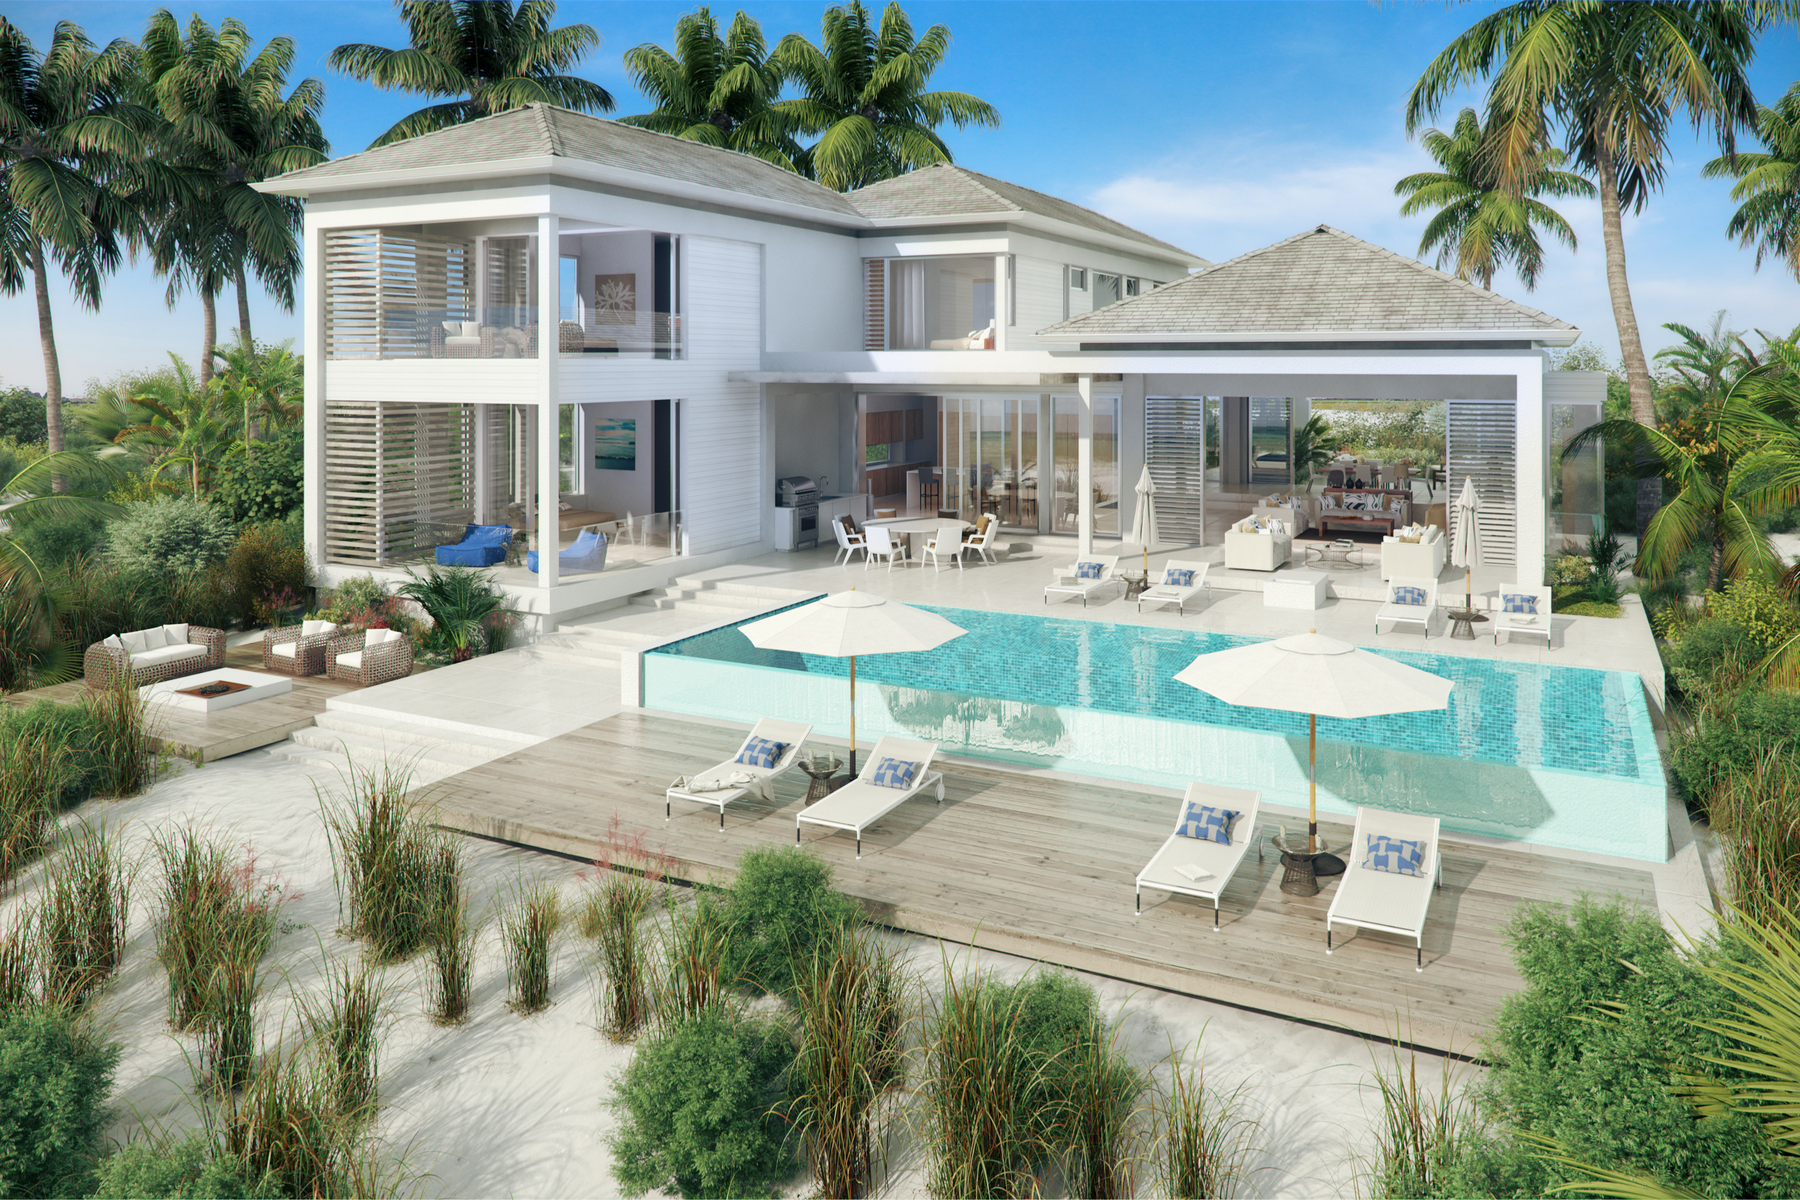 Tek Ailelik Ev için Satış at BEACH ENCLAVE GRACE BAY Design A Oceanview Grace Bay, Providenciales, TCI Turks Ve Caicos Adalari